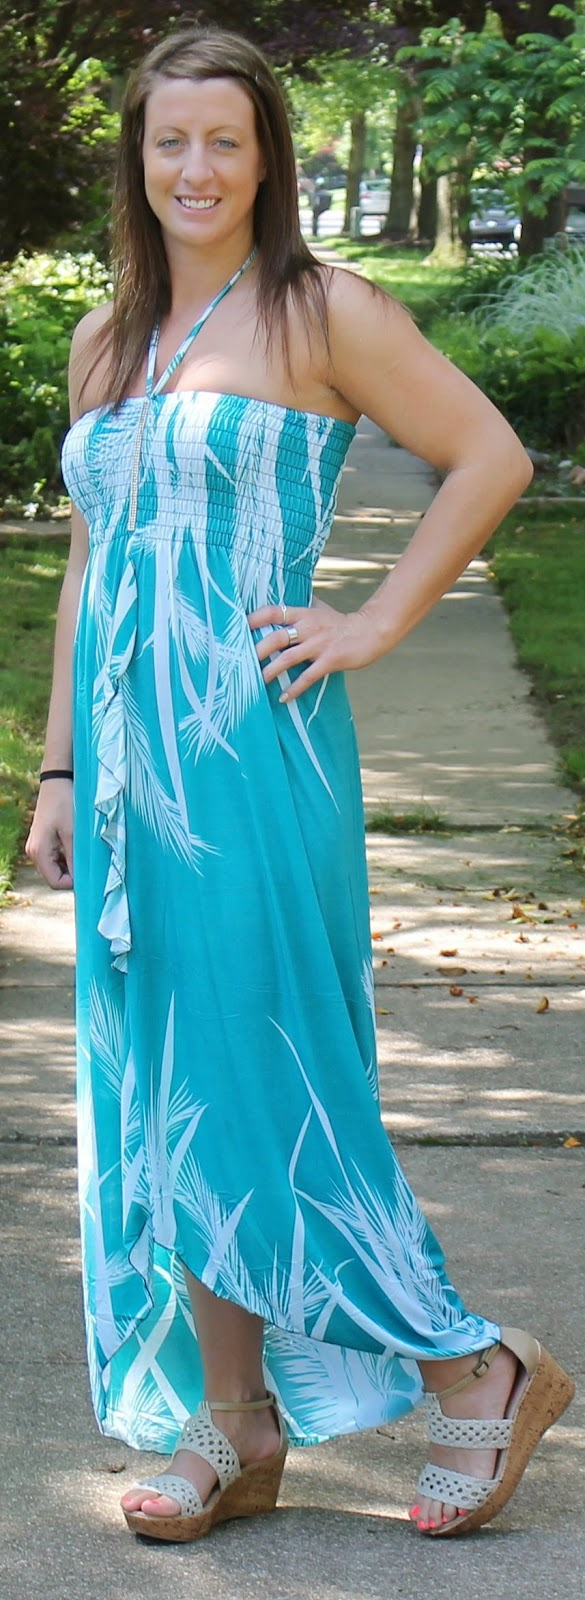 summer dress, get dressed, fashion, outfit